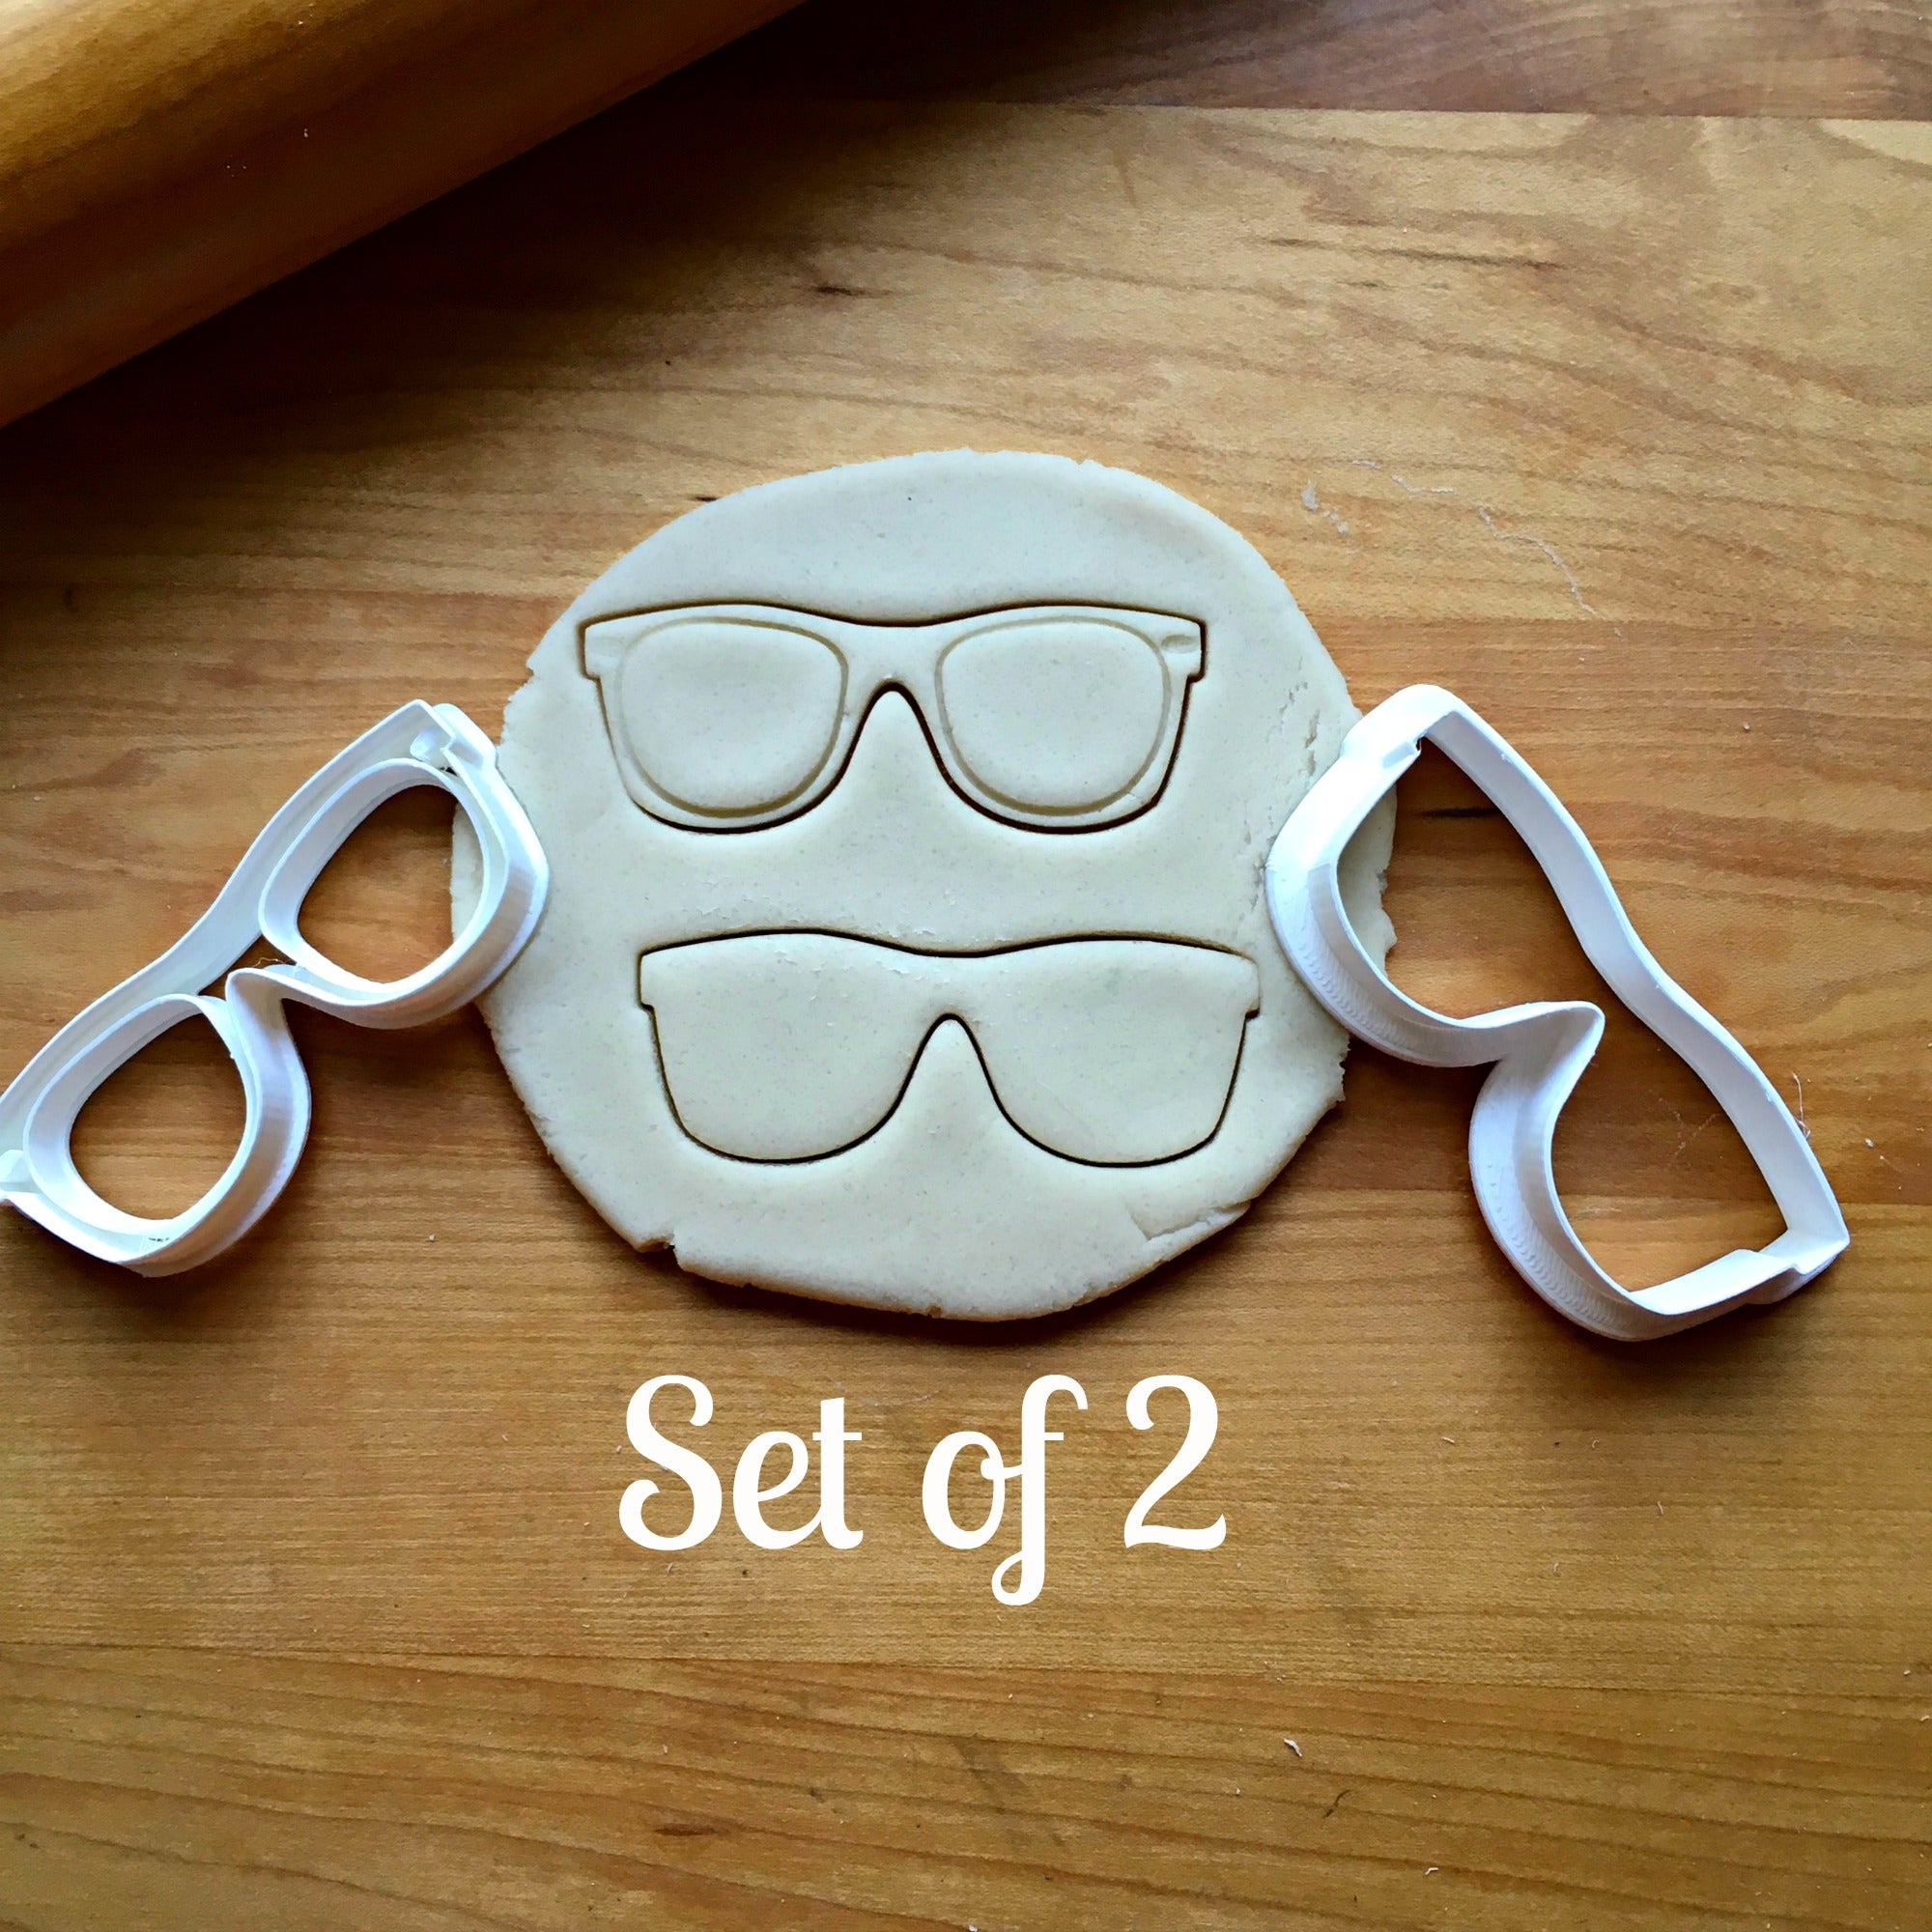 Set of 2 Retro Sunglasses Cookie Cutters/Dishwasher Safe